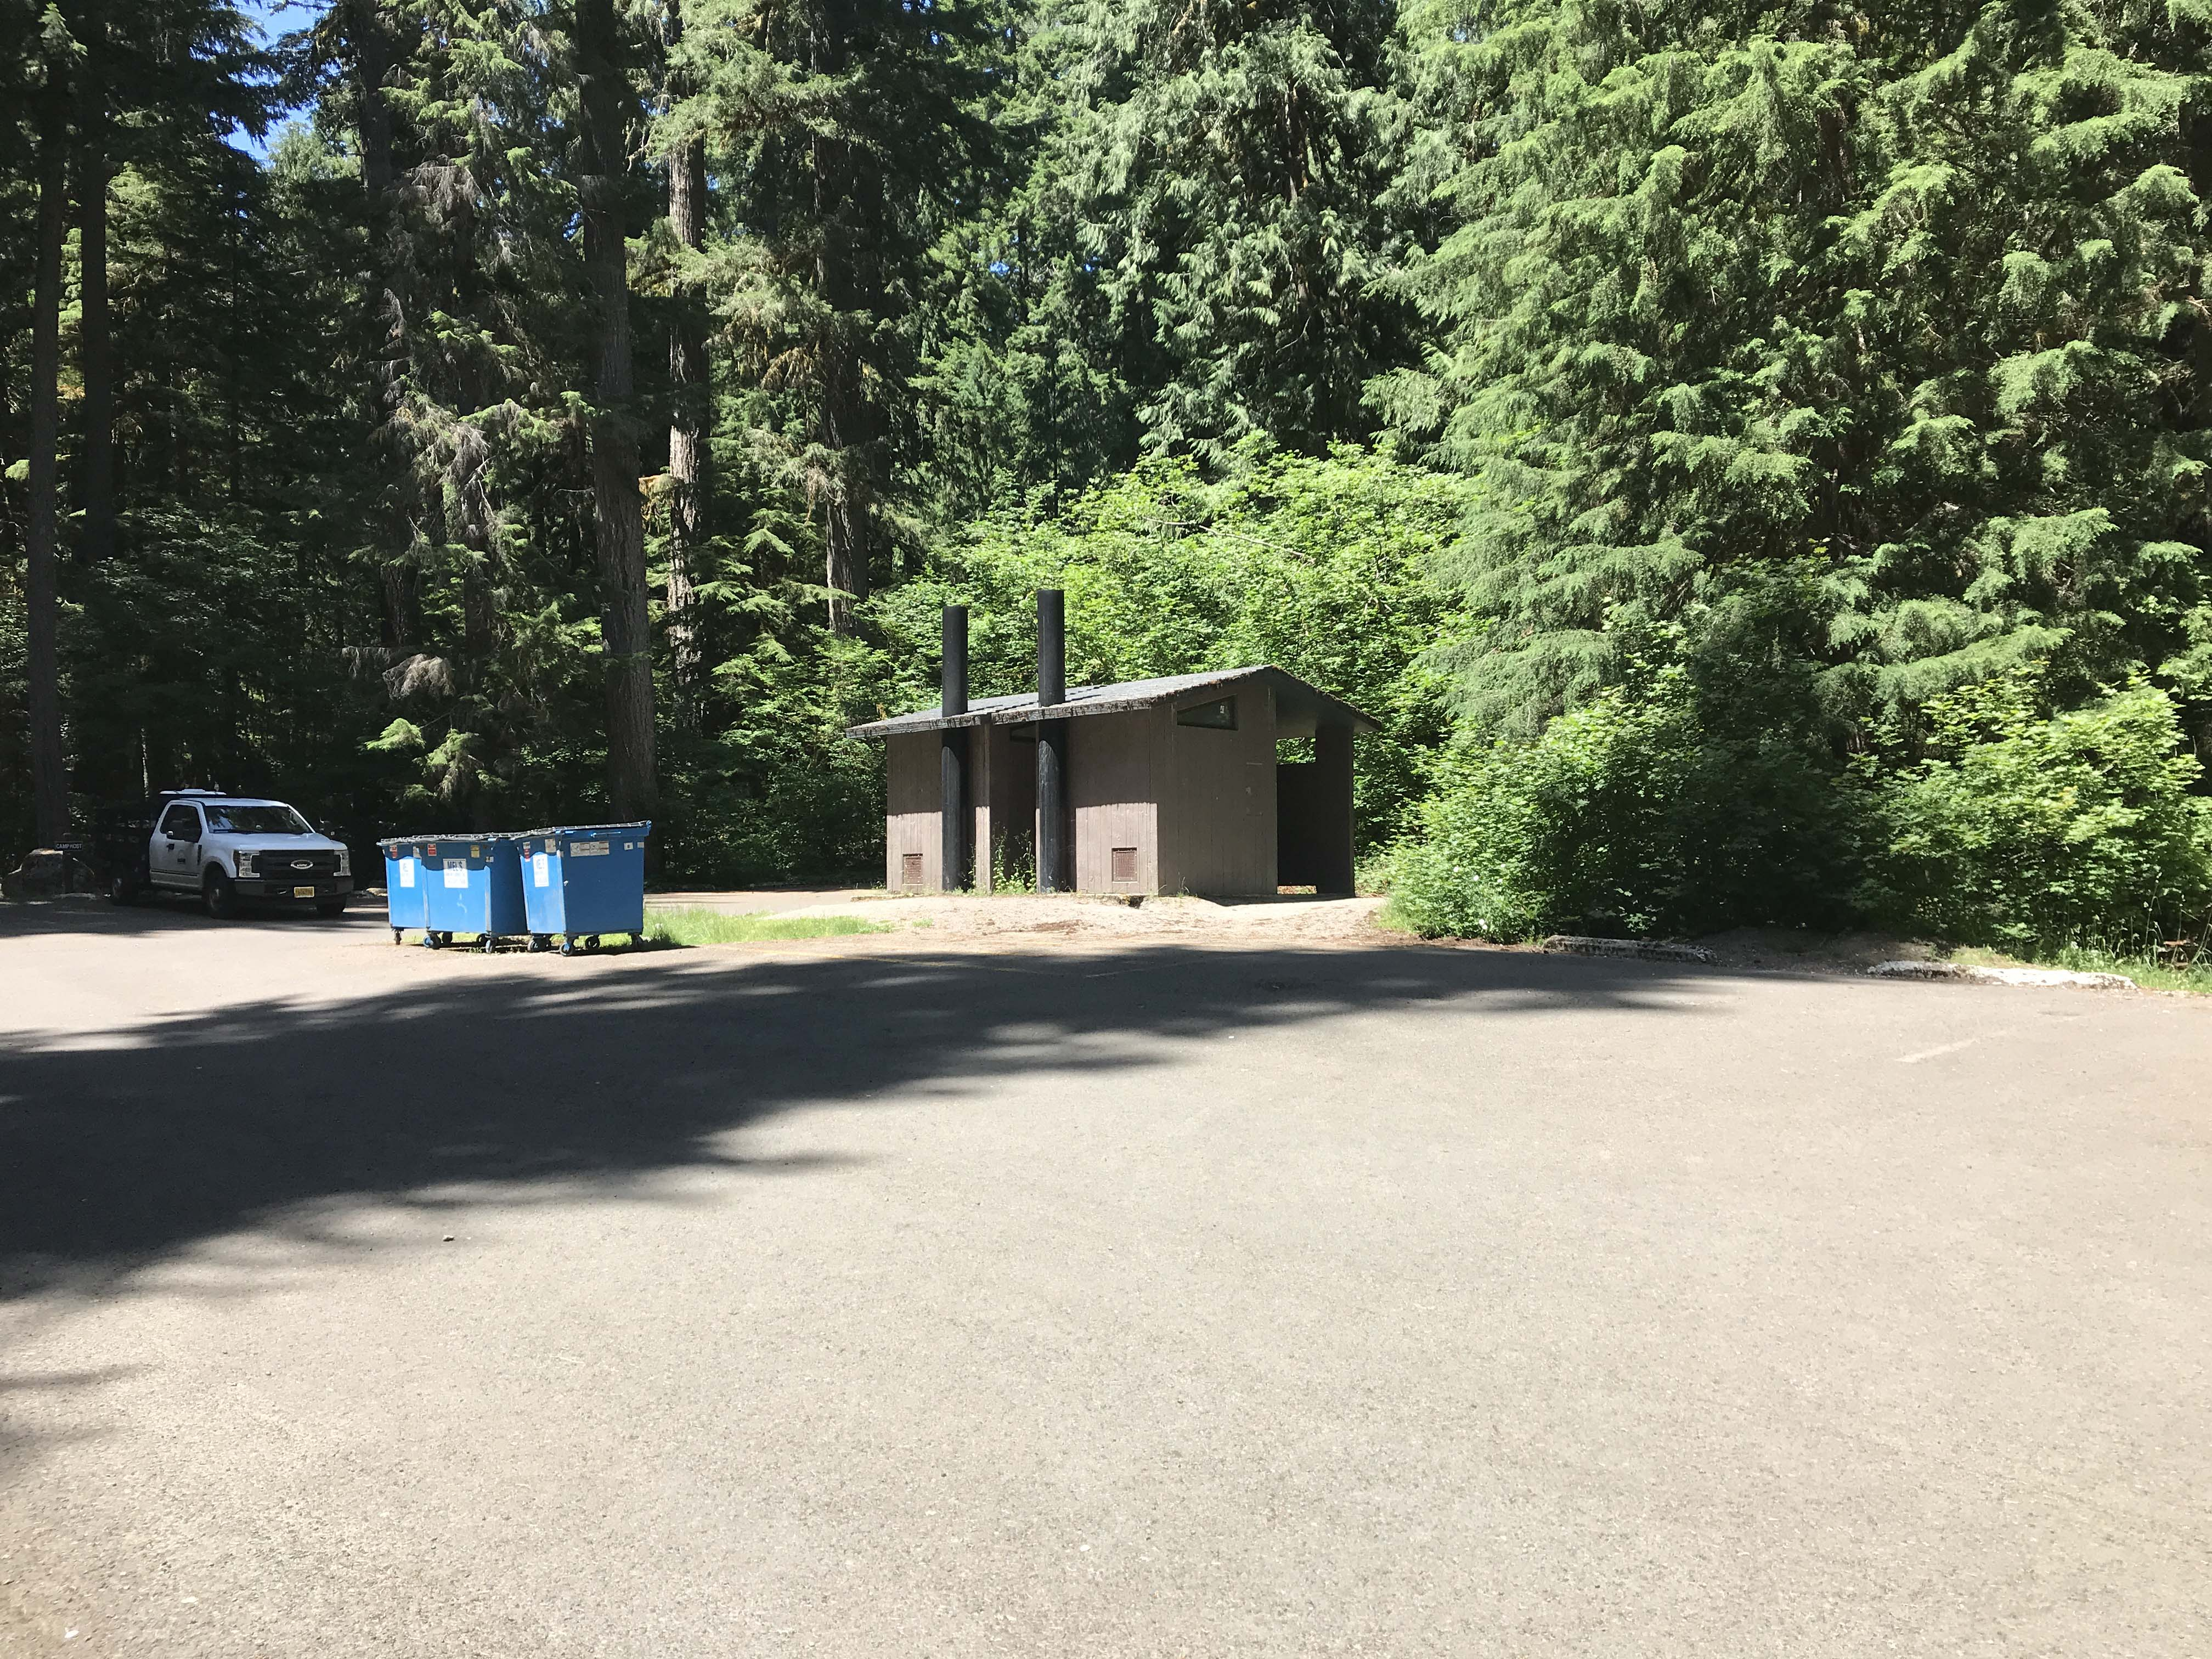 First Time at Bagby Hot Springs | Camper Chronicles